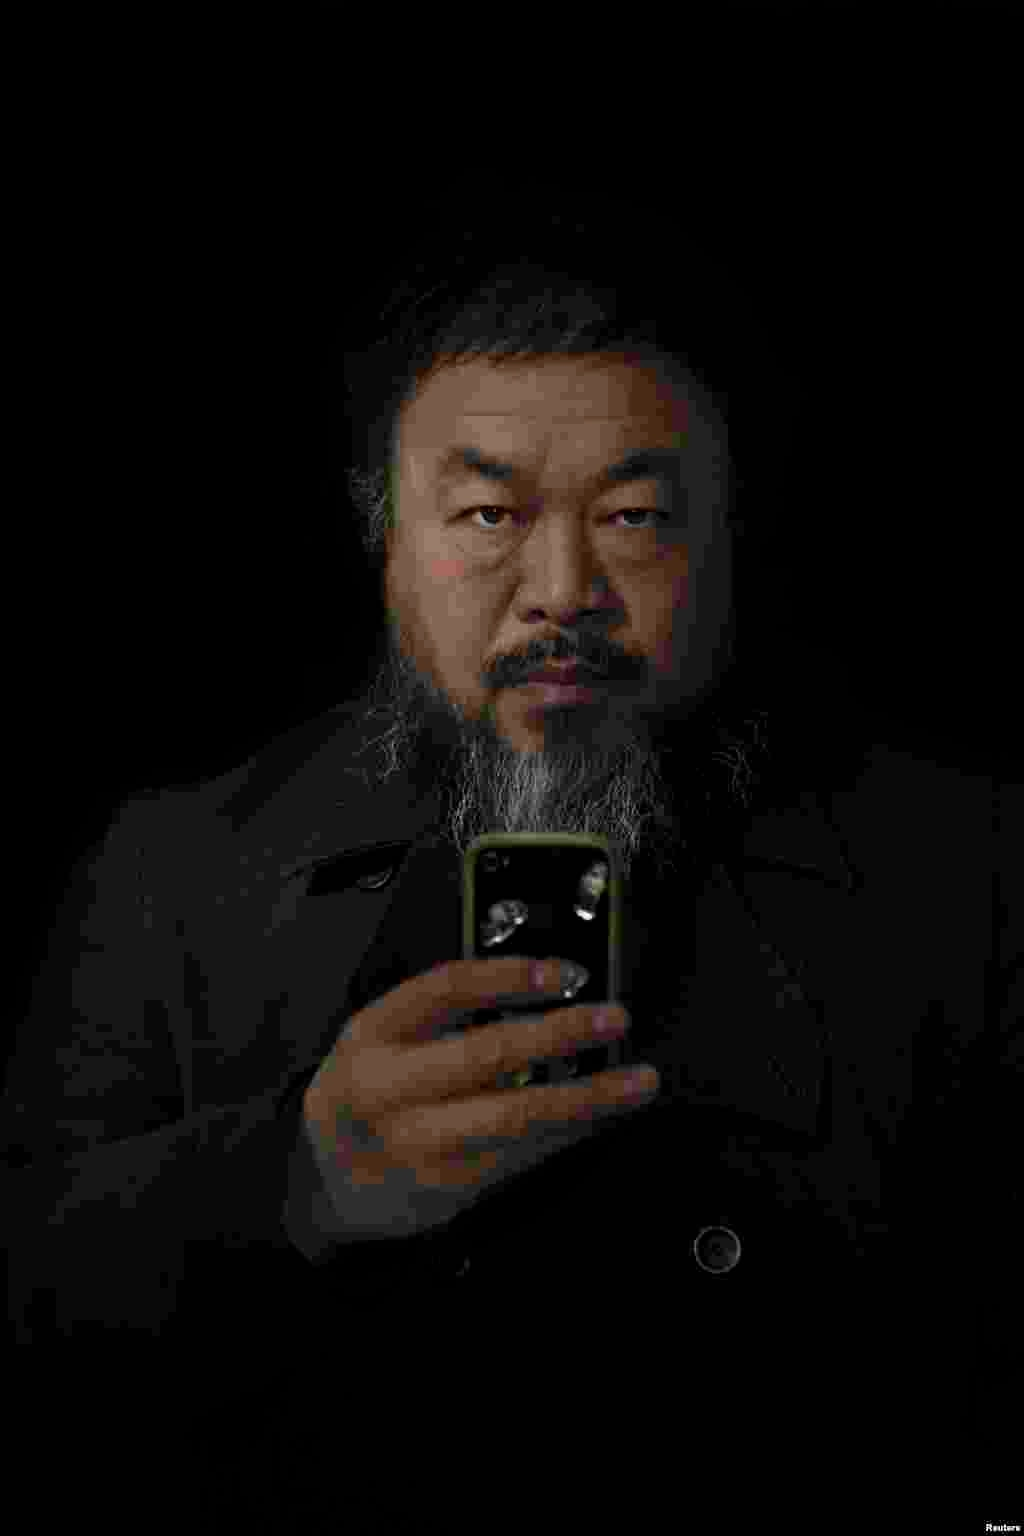 """Stefen Chow of Malaysia, a photographer working for """"Smithsonian"""" magazine, won second prize in the People -- Staged Portraits Single category with this picture of Chinese dissident artist Ai Weiwei in Beijing."""